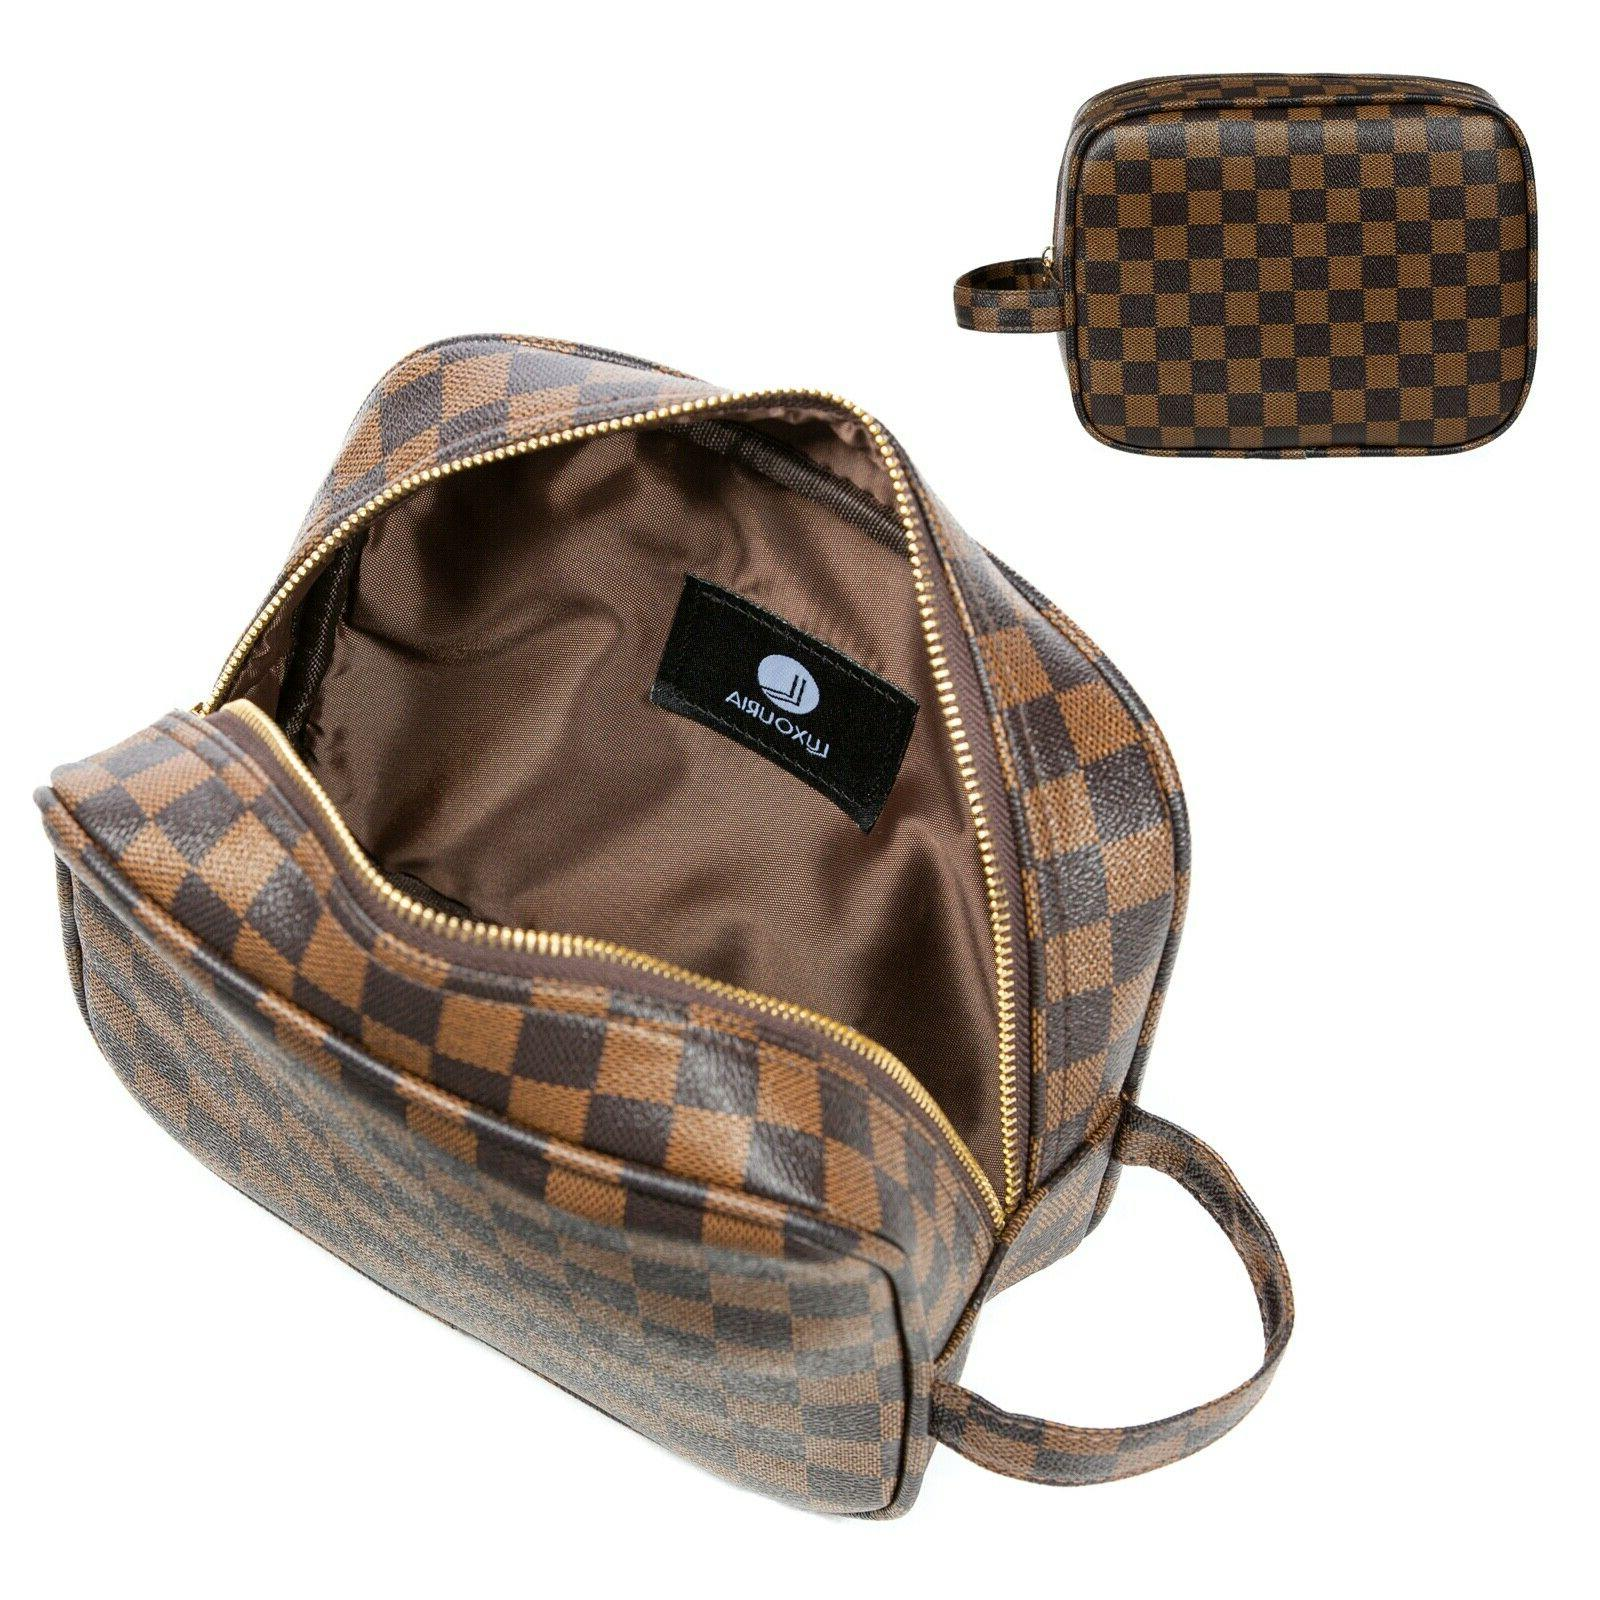 travel checkered makeup bag for women luxury